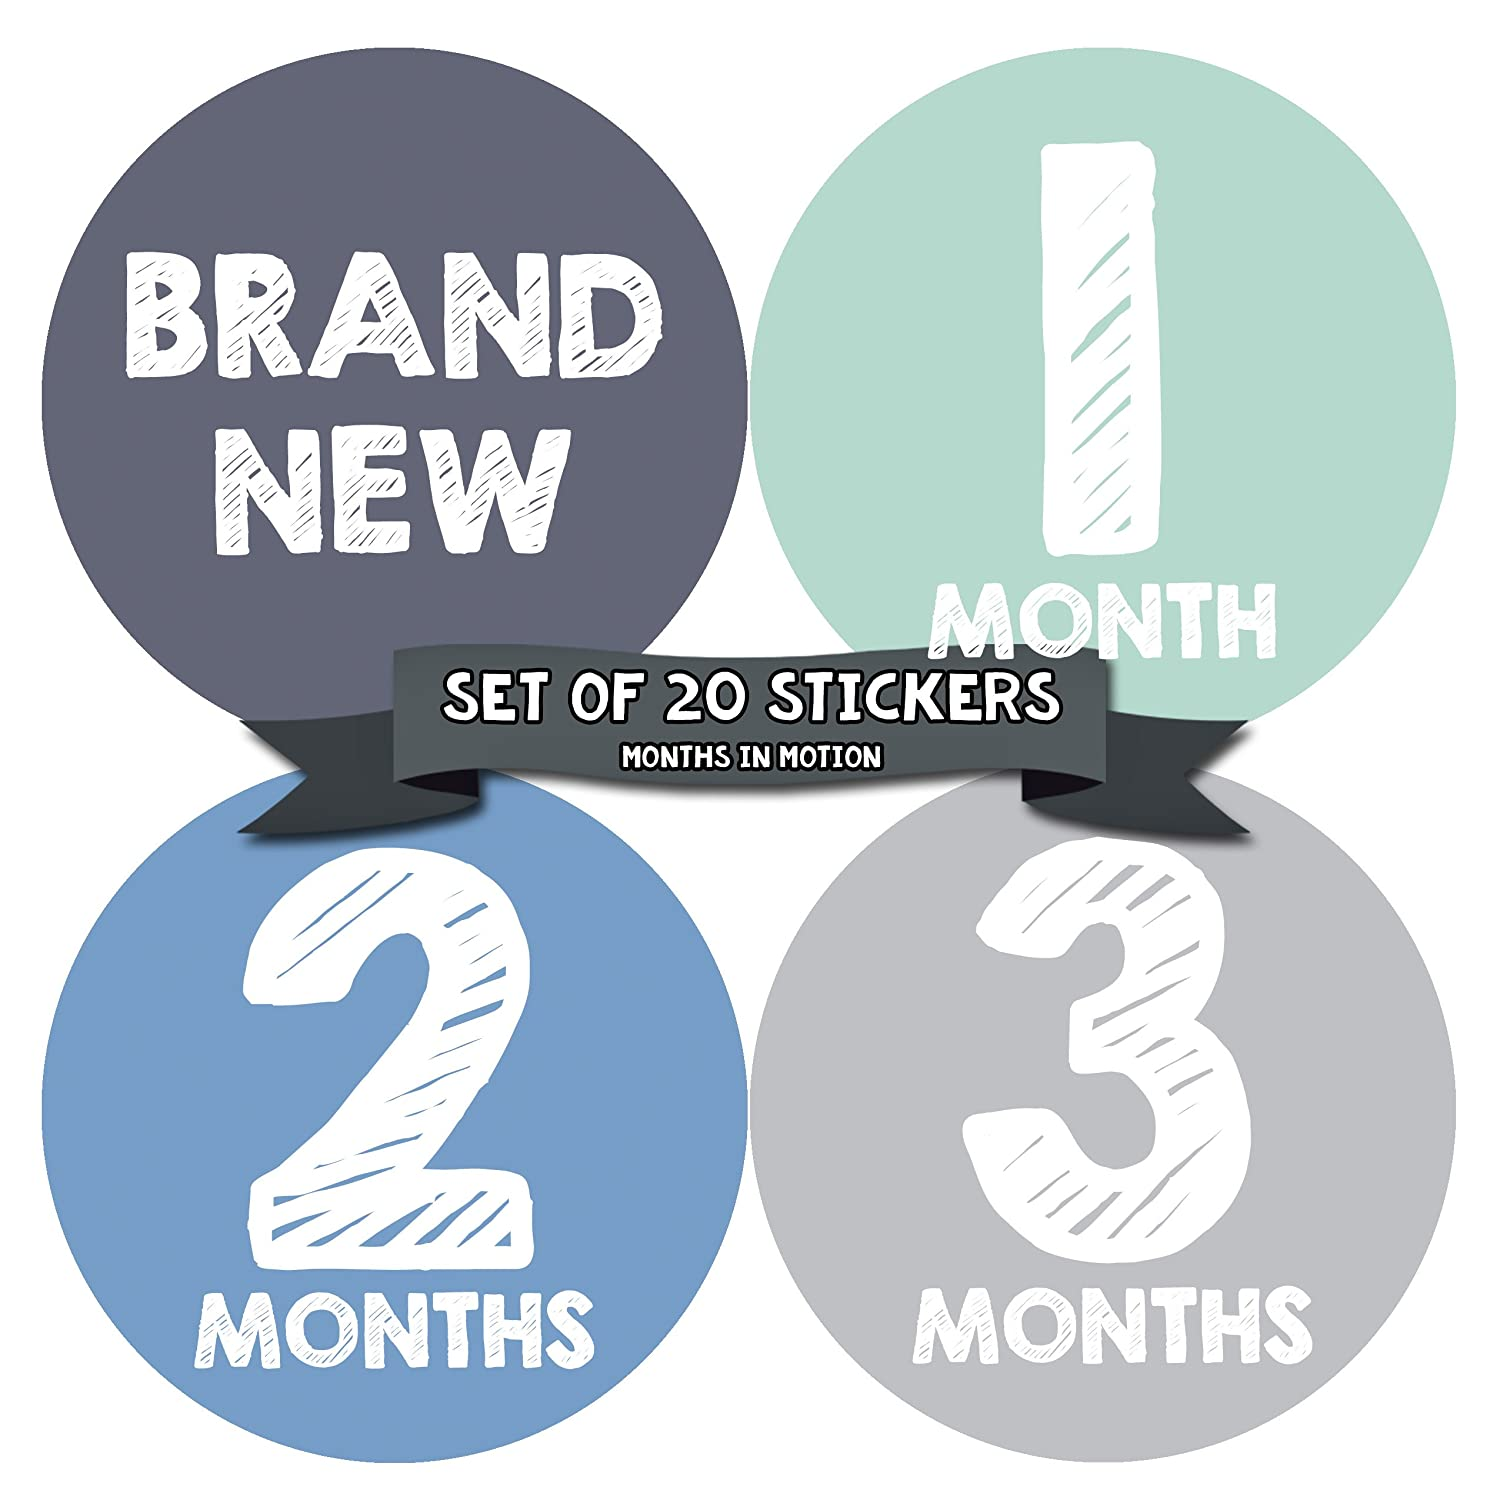 Months in Motion Baby Monthly Stickers - Baby Milestone Stickers - Newborn Boy Stickers - Month Stickers for Baby Boy - Baby Boy Stickers - Newborn Monthly Milestone Stickers - Set of 20